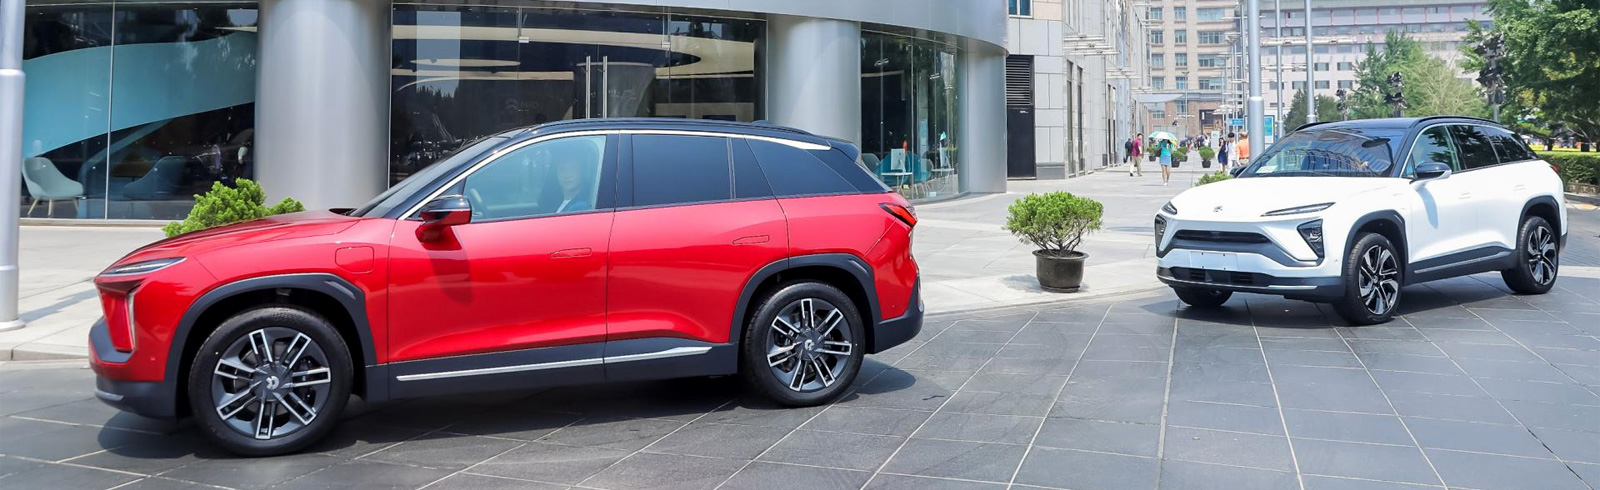 NIO February 2020 delivery numbers, 2019 financial results to be announced on March 18